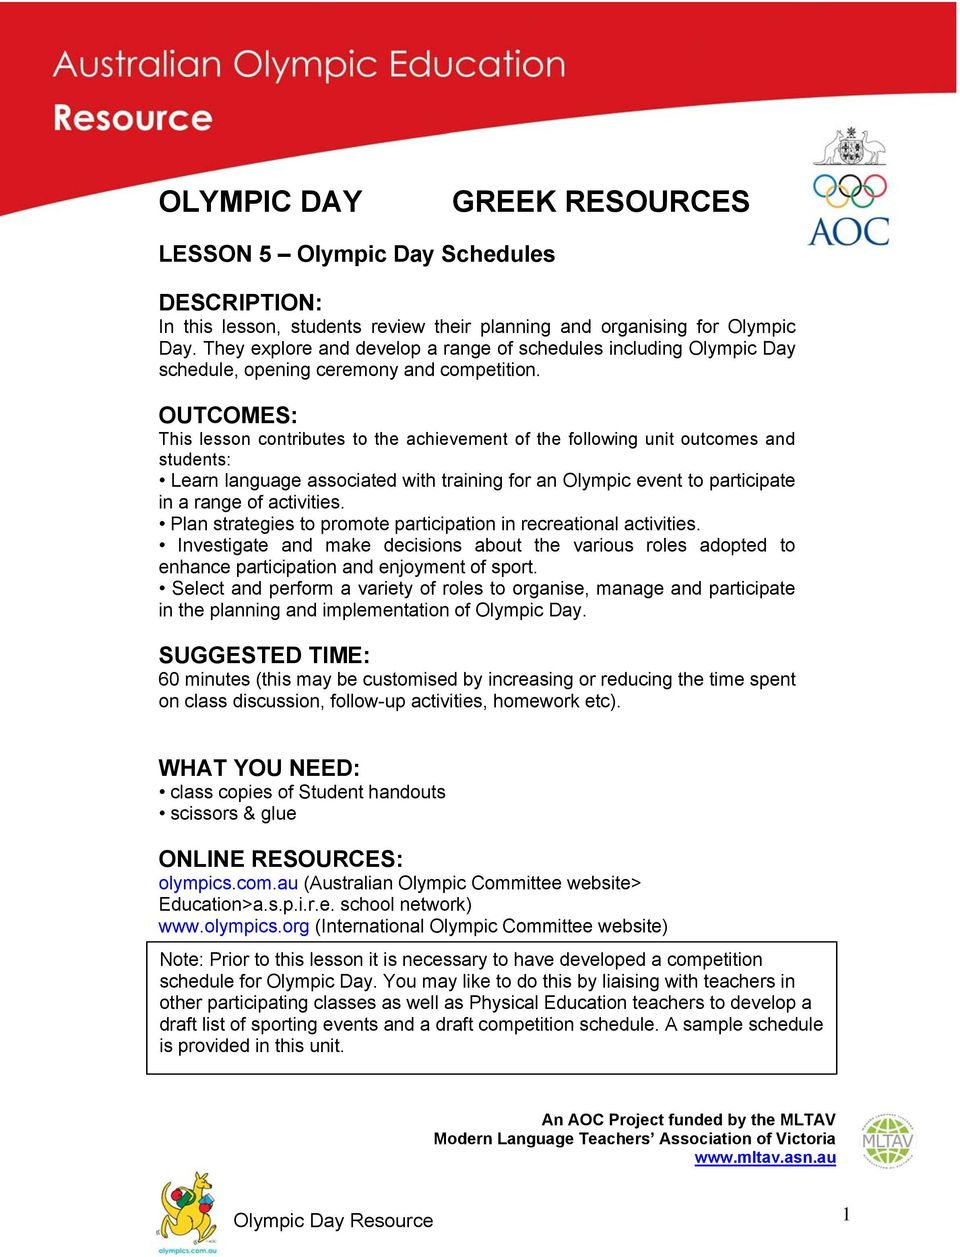 OUTCOMES: This lesson contributes to the achievement of the following unit outcomes and students: Learn language associated with training for an Olympic event to participate in a range of activities.